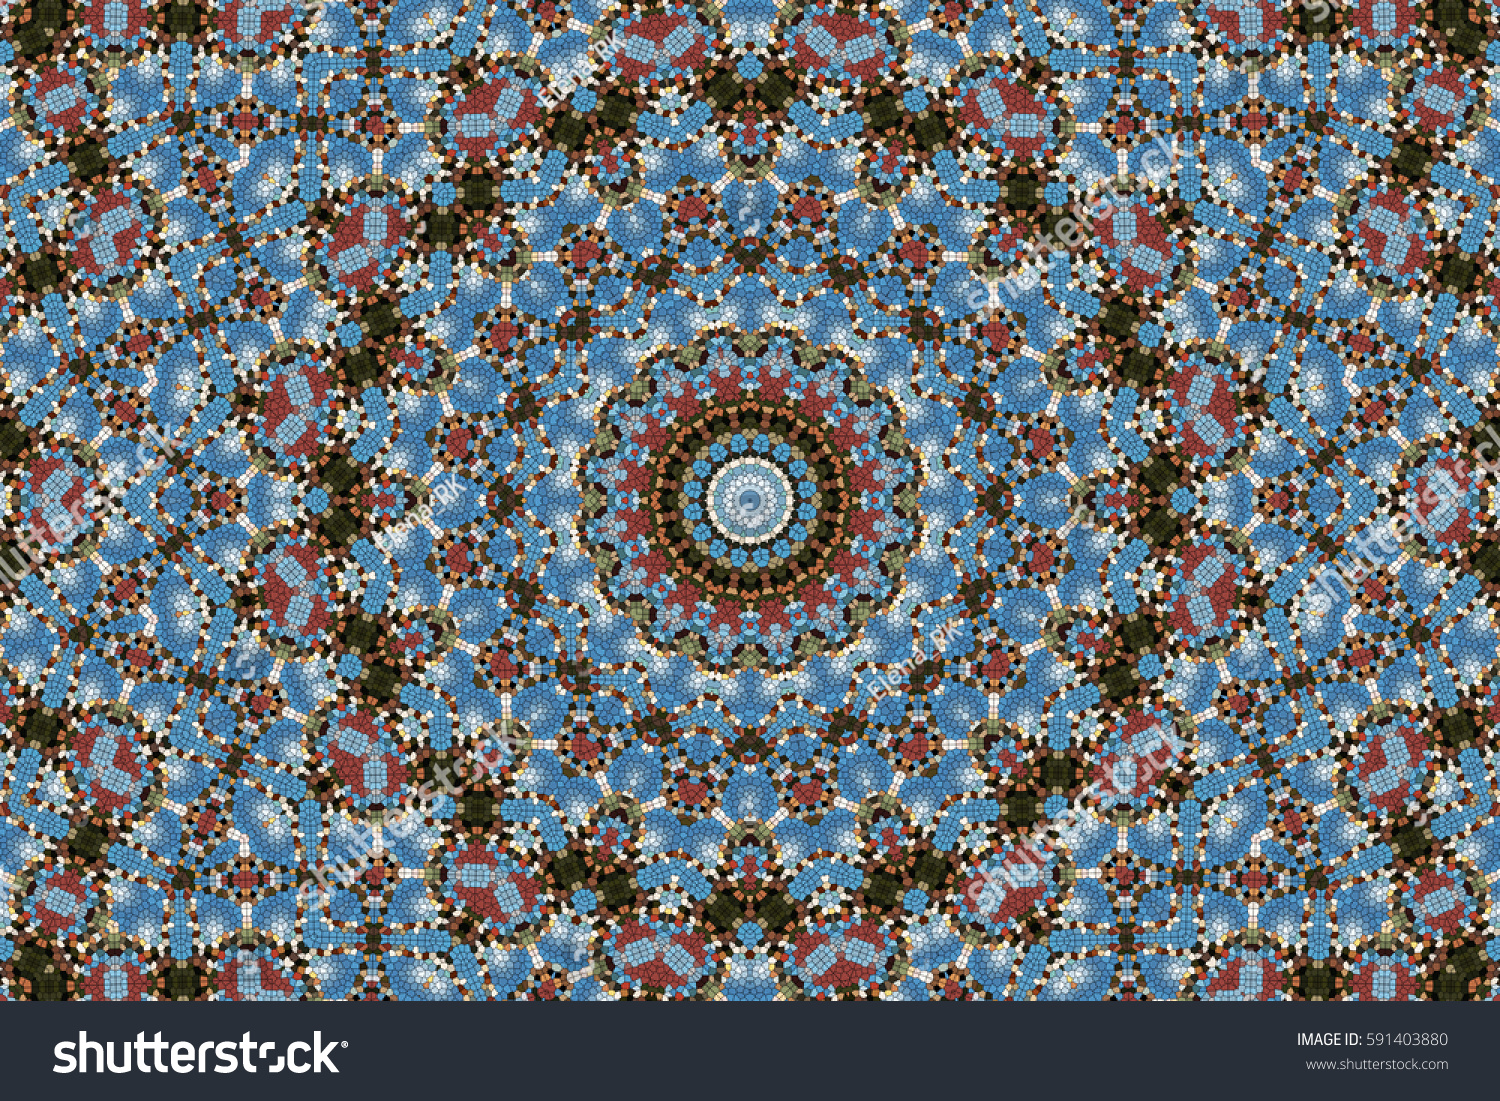 Online image photo editor shutterstock editor for Mosaic patterns online